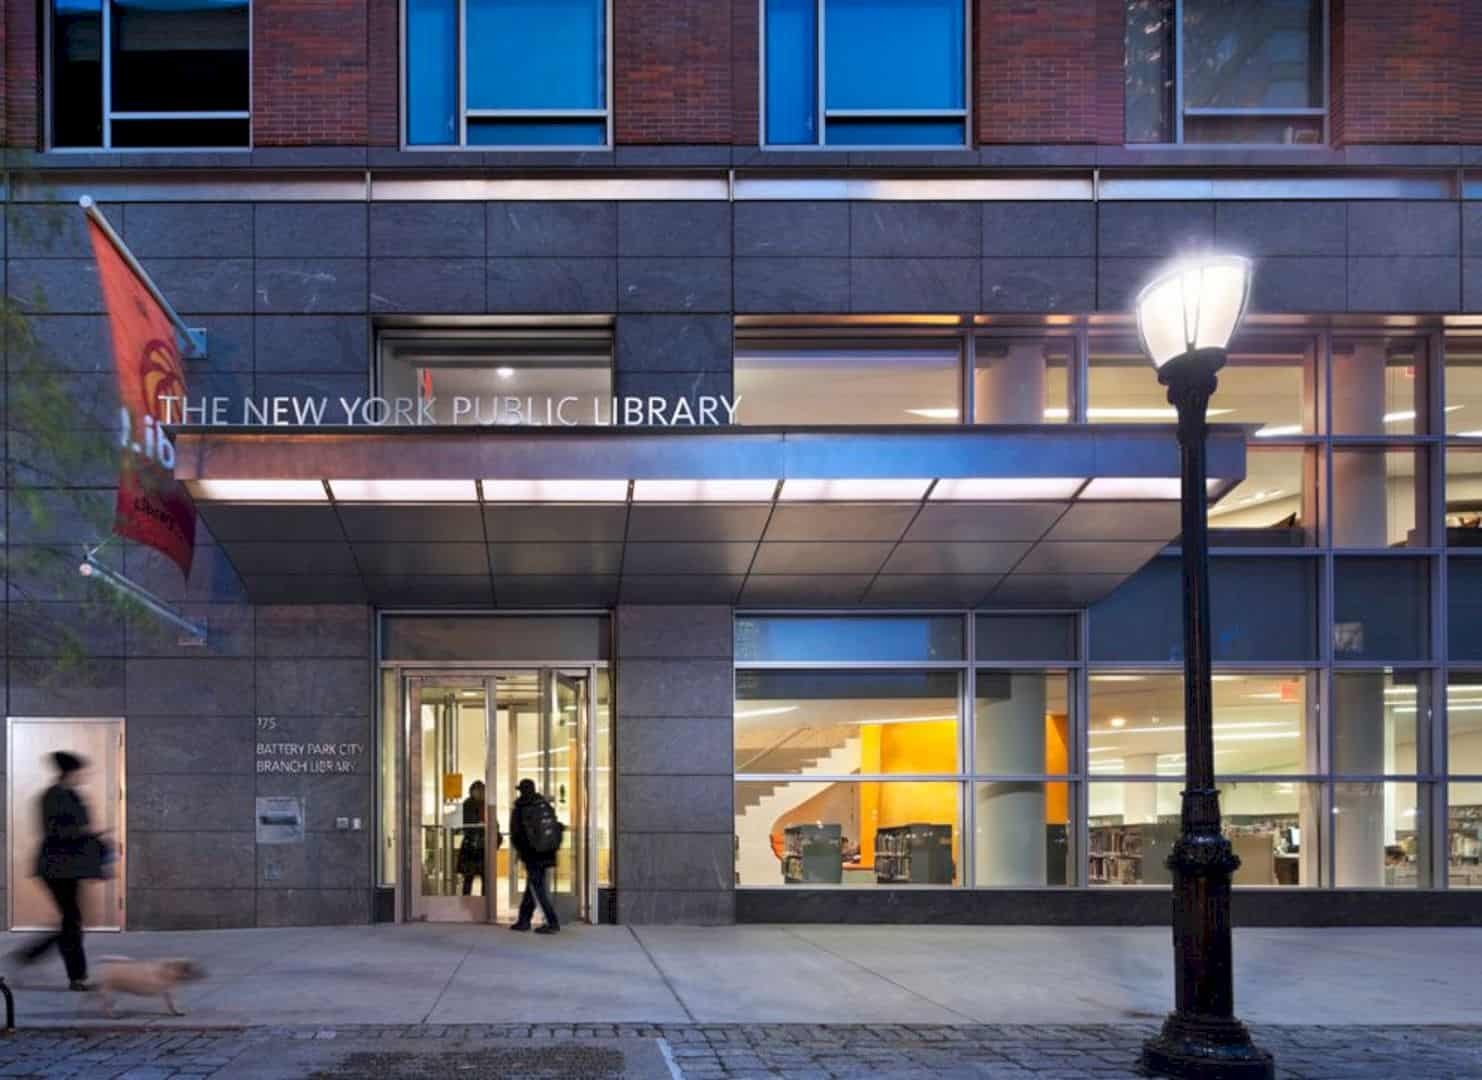 New York Public Library: A New Branch Library with Visibility Design